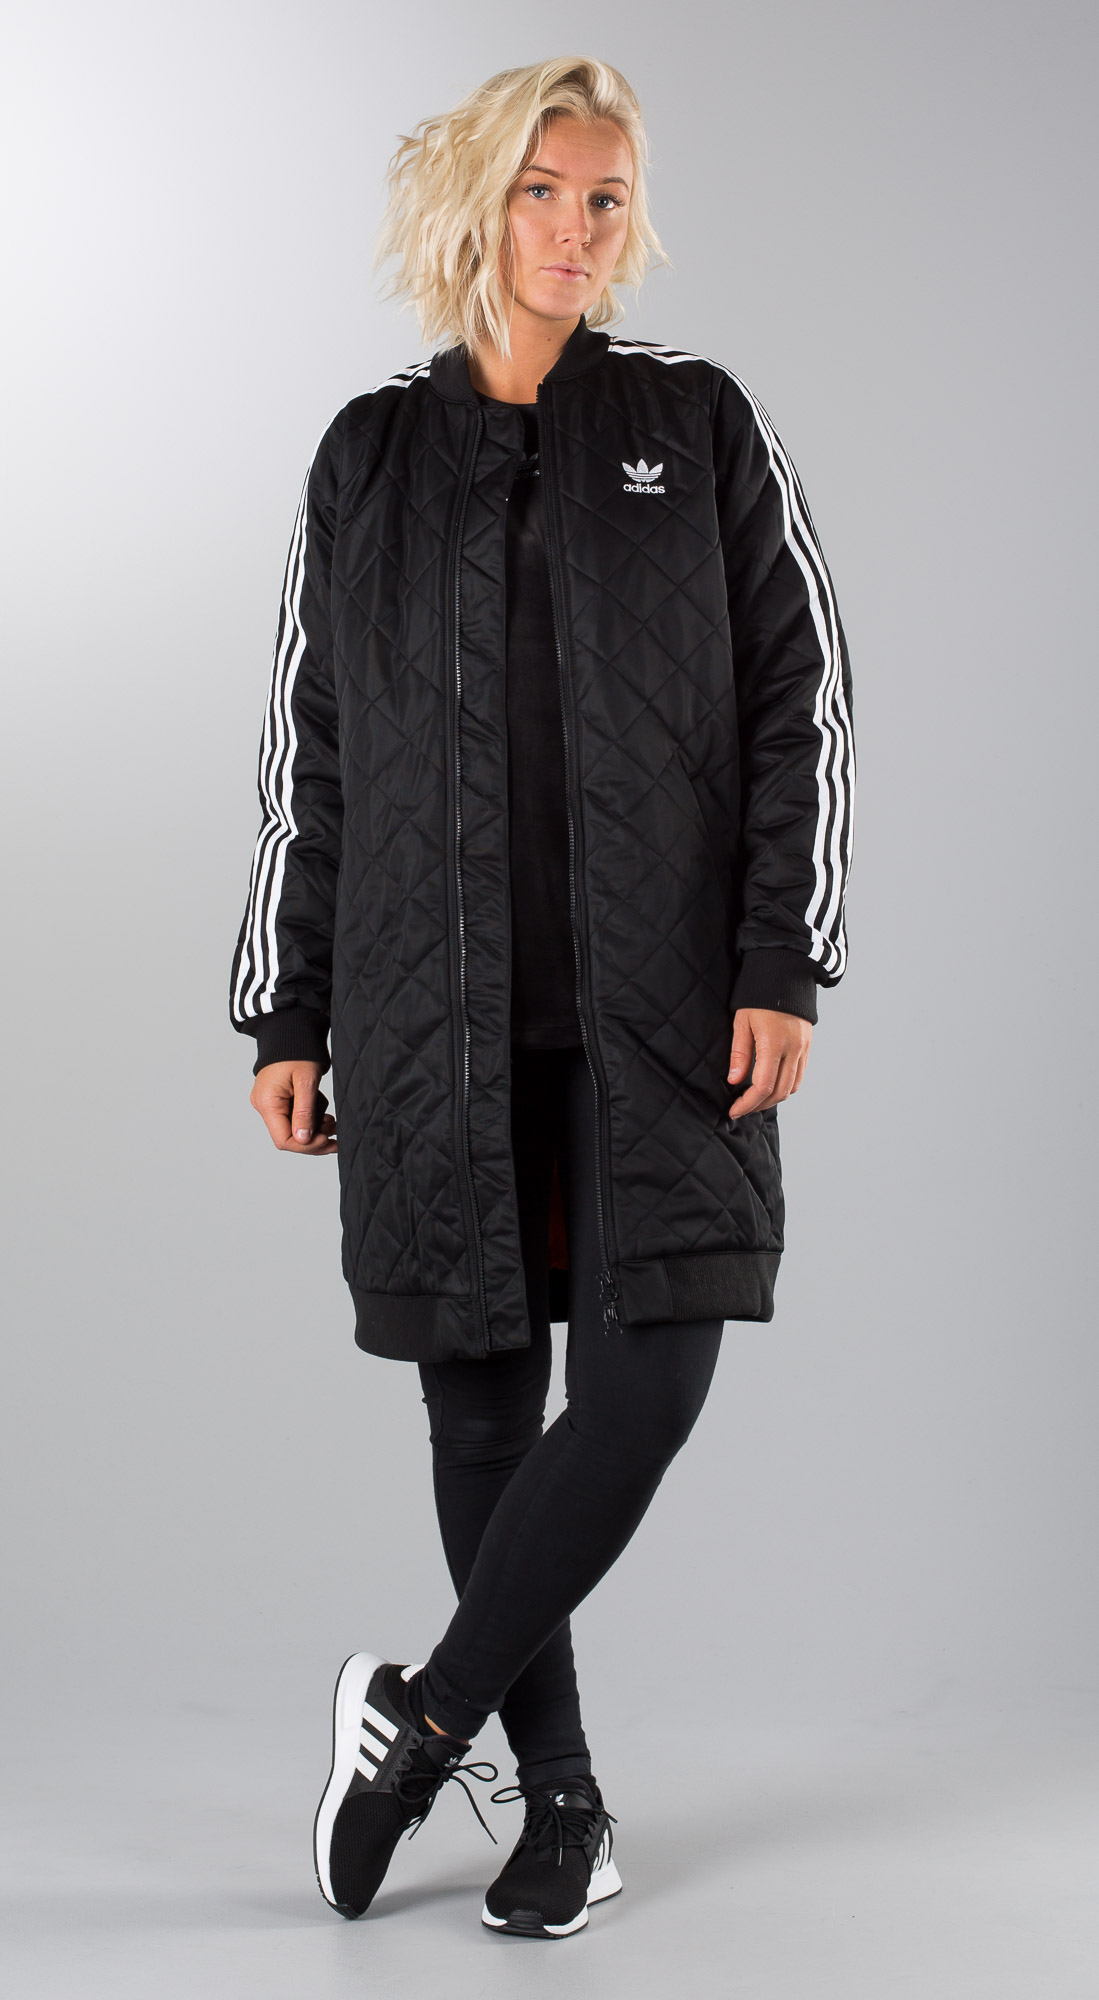 Adidas Originals Long Bomber Black Outfit Ridestore